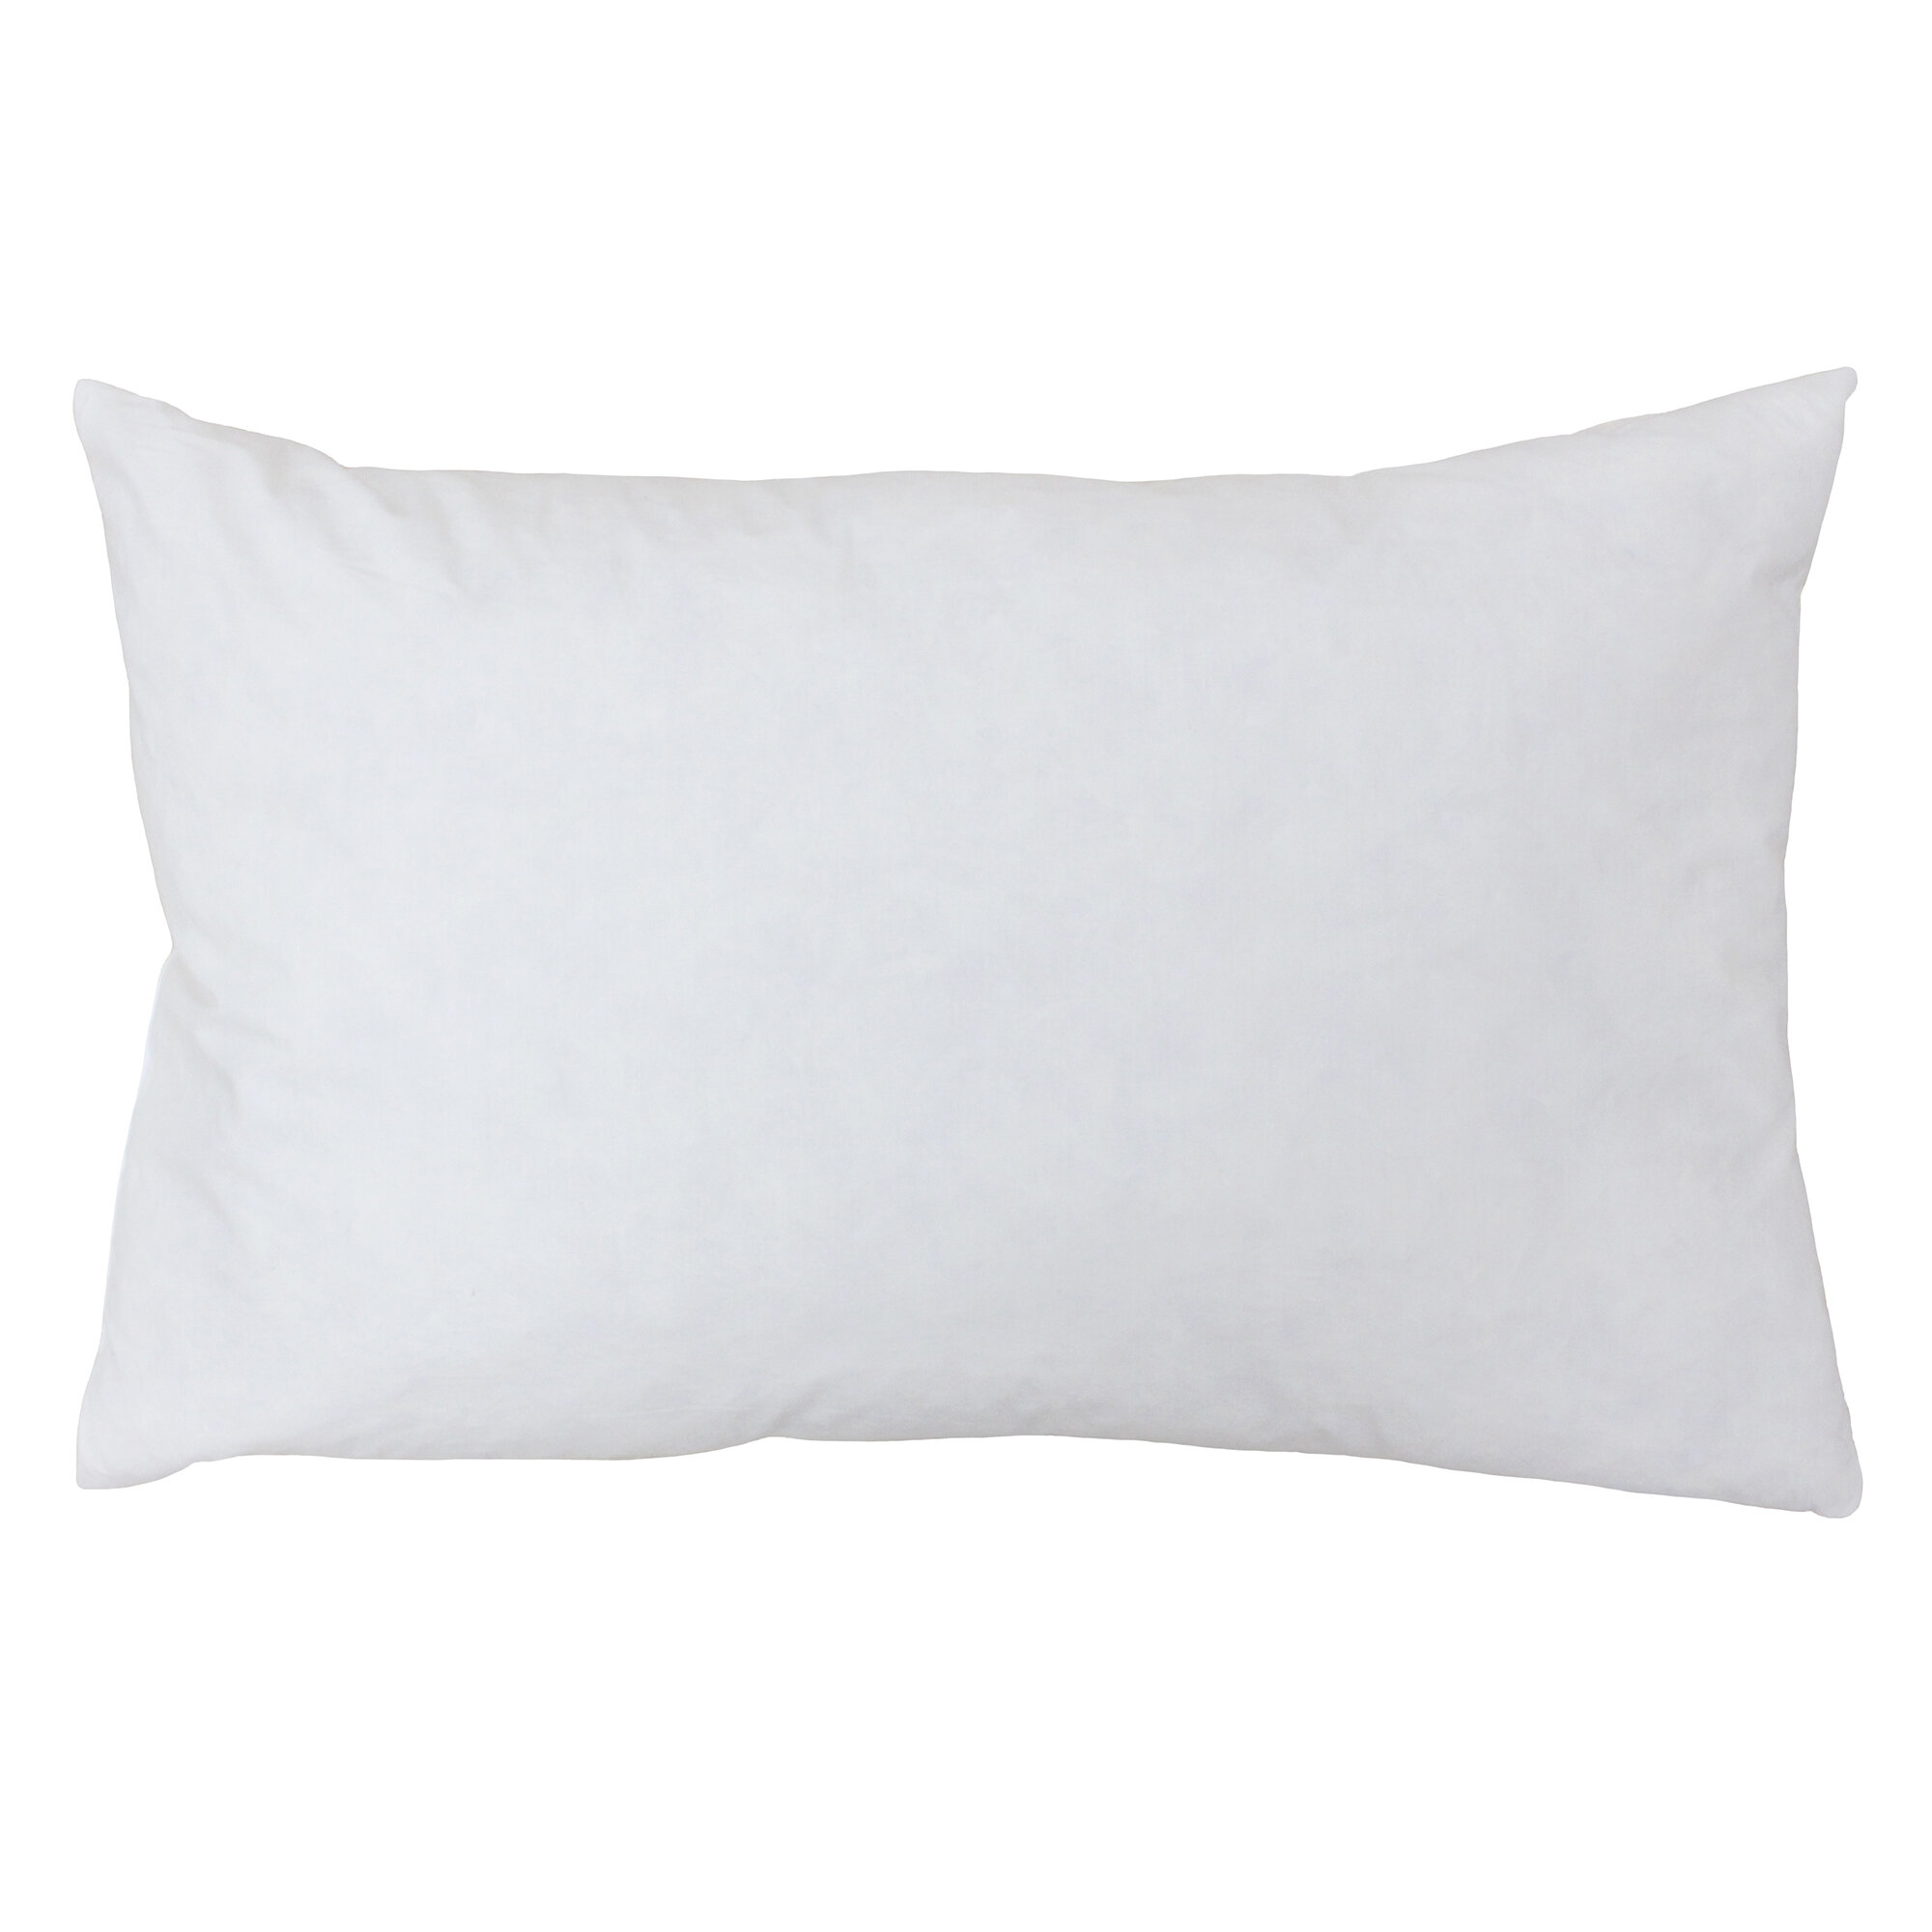 100/% Duck Feather Cushion Inner Pad 100/% Cotton Cover All Sizes Available